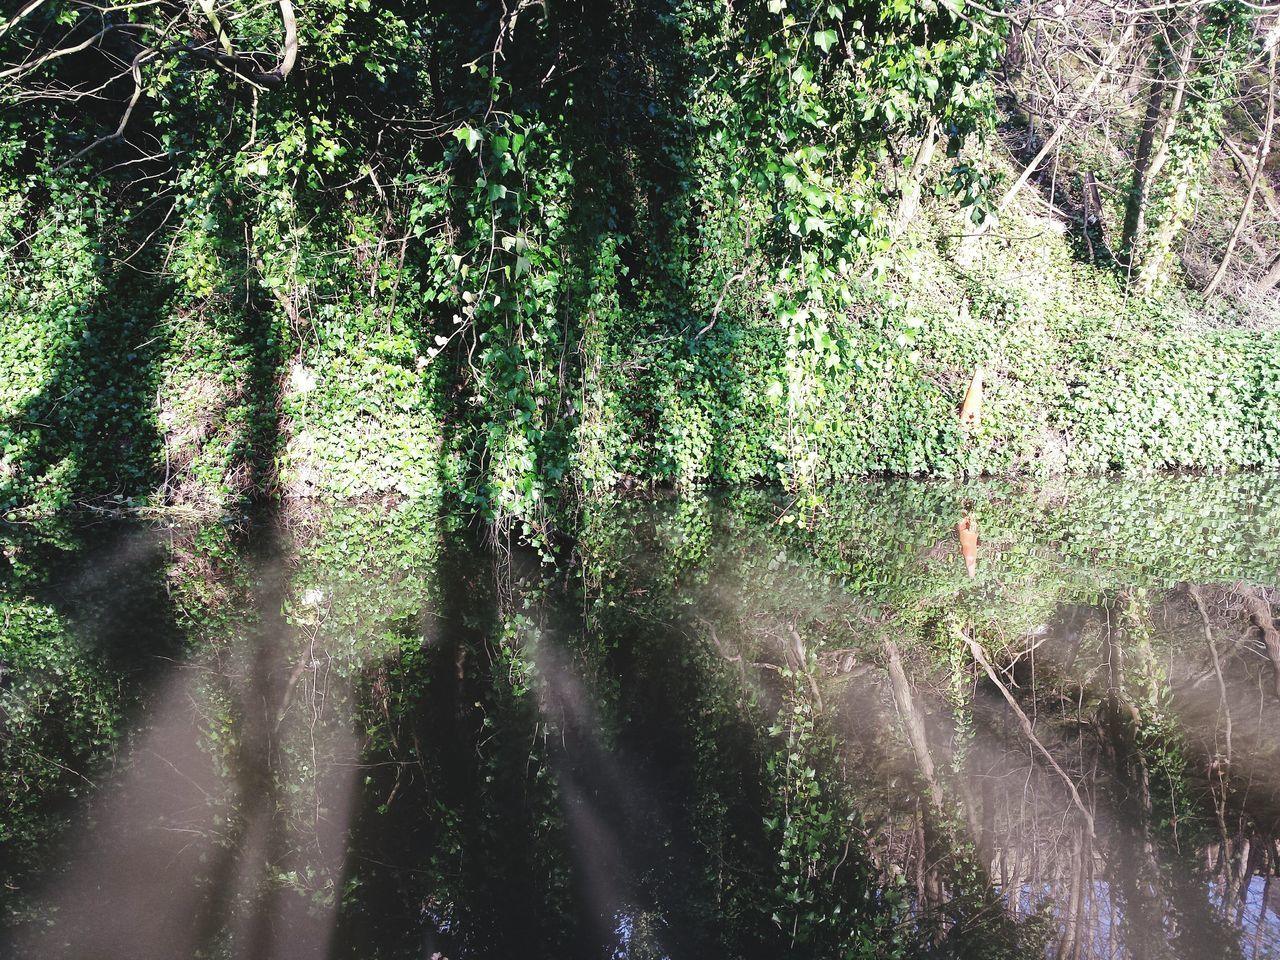 Nature Growth Tree Green Color No People Low Angle View Backgrounds Full Frame Beauty In Nature Outdoors Day Tranquility Close-up Leaves Yorkshire Green Landscape Landscapes Freshness Springtime Canal Reflections Reflection Beauty In Nature Tranquility